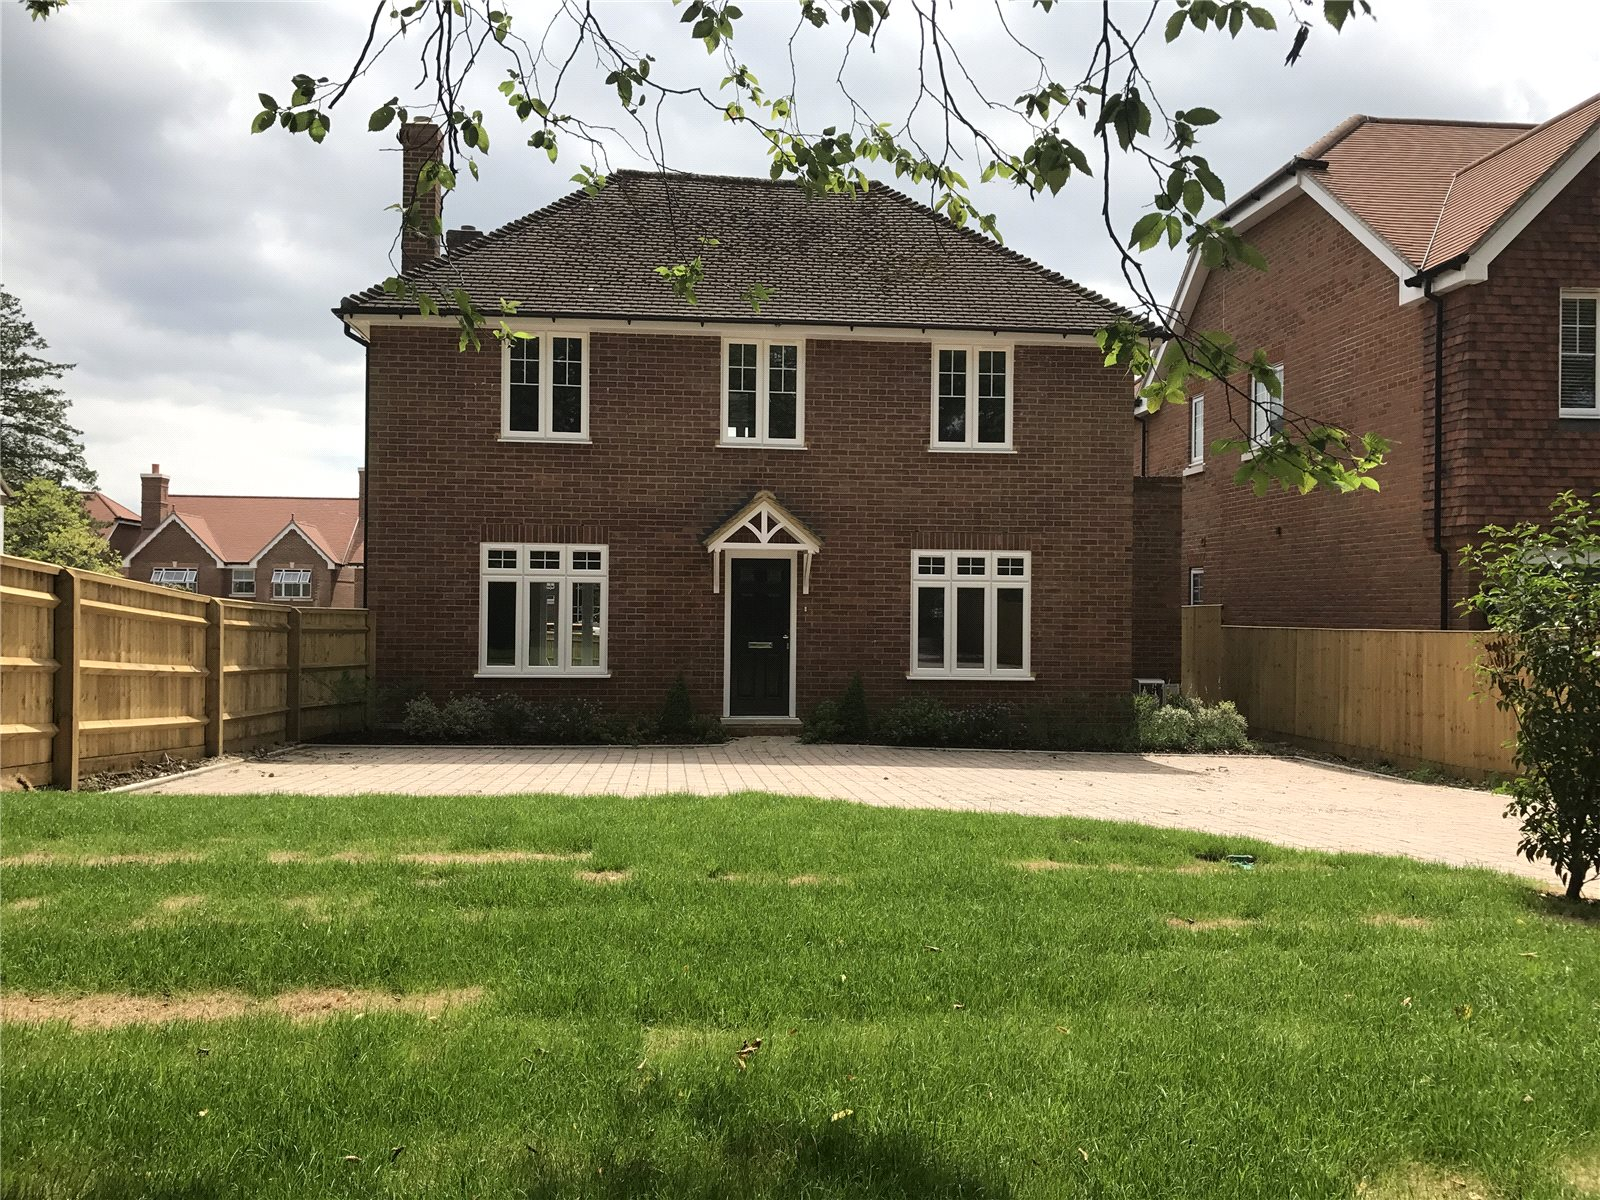 Частный дом для того Продажа на Hollybush Hill, Stoke Poges, Buckinghamshire, SL2 Stoke Poges, Англия